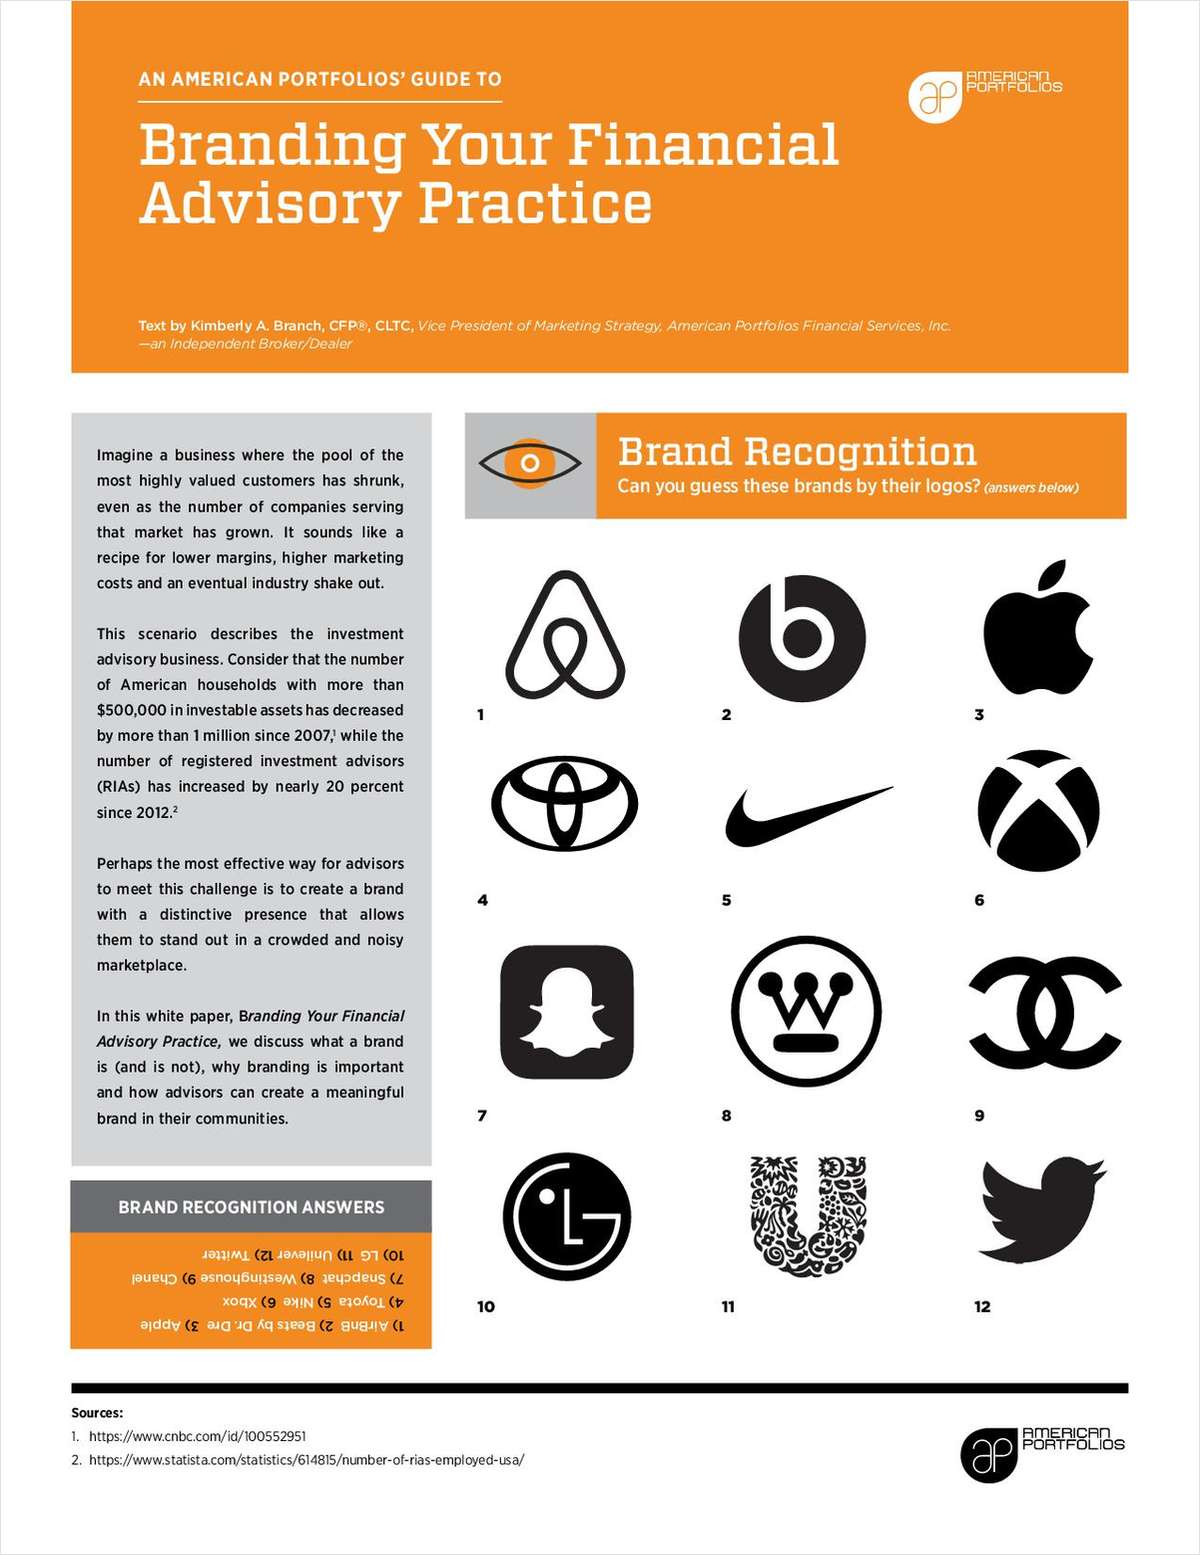 Guide to Branding Your Financial Advisory Practice